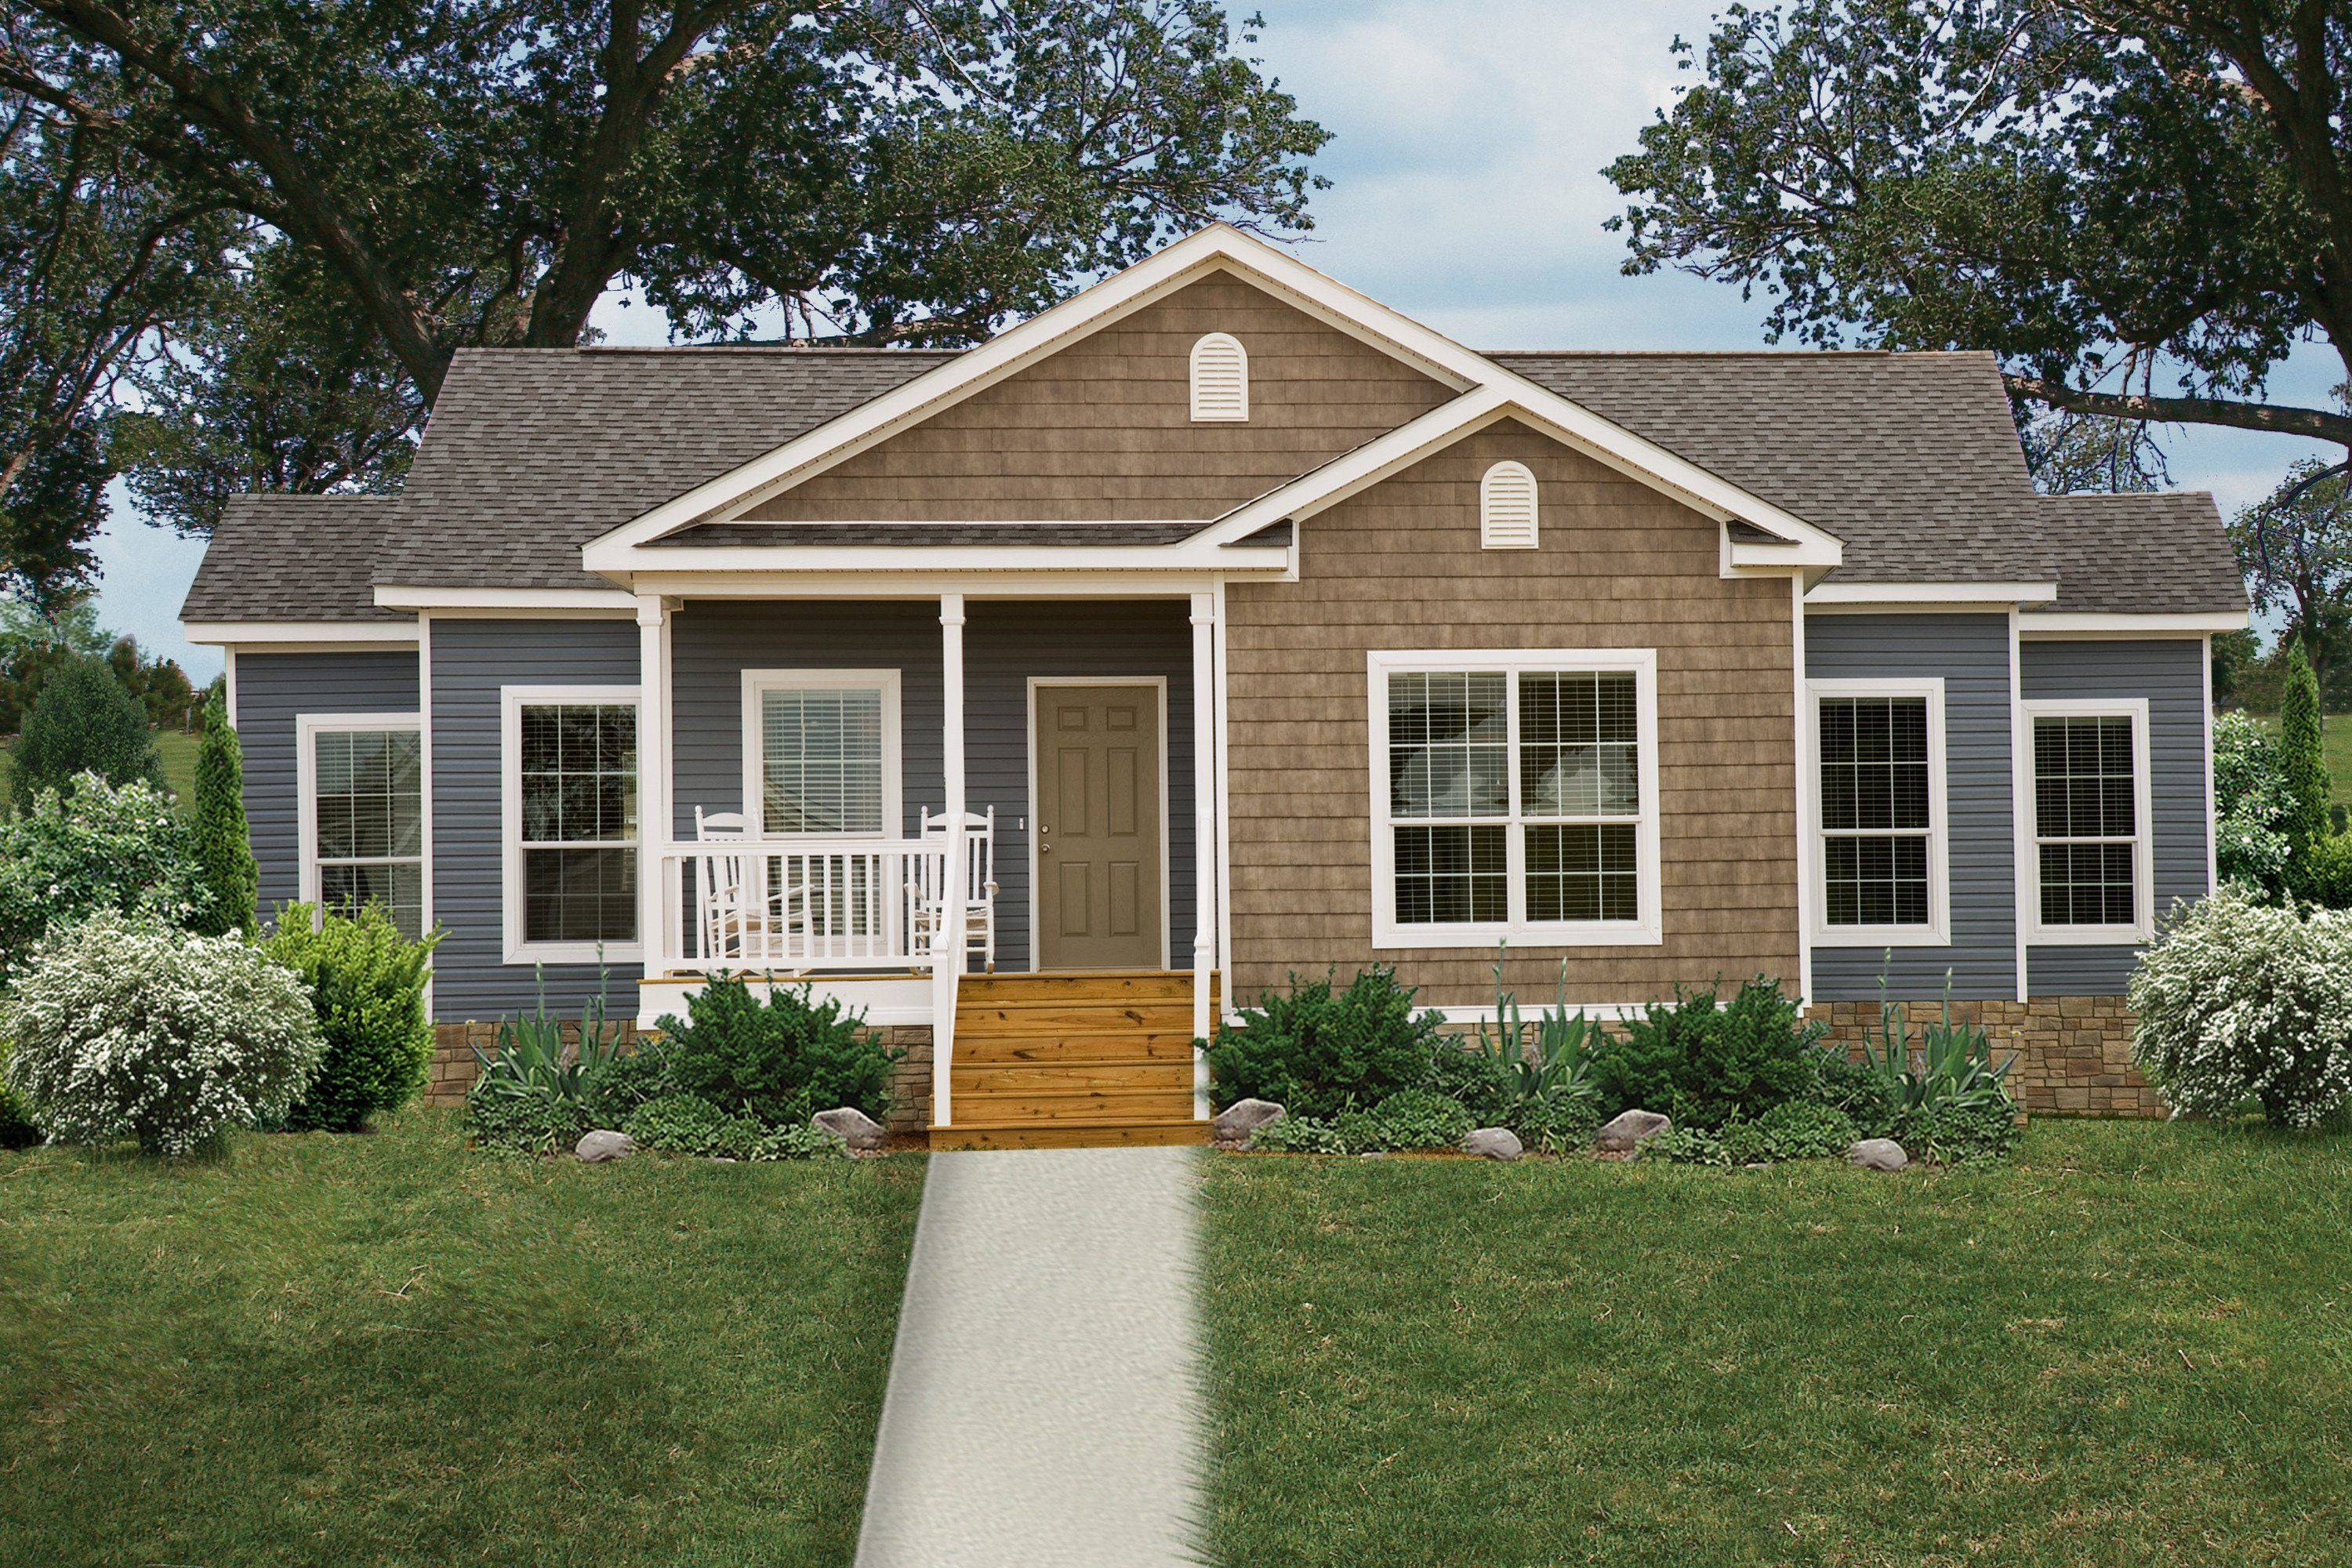 Manufactured And Modular Home Exteriors Across The Country With Images Clayton Homes Modular Homes Oakwood Homes